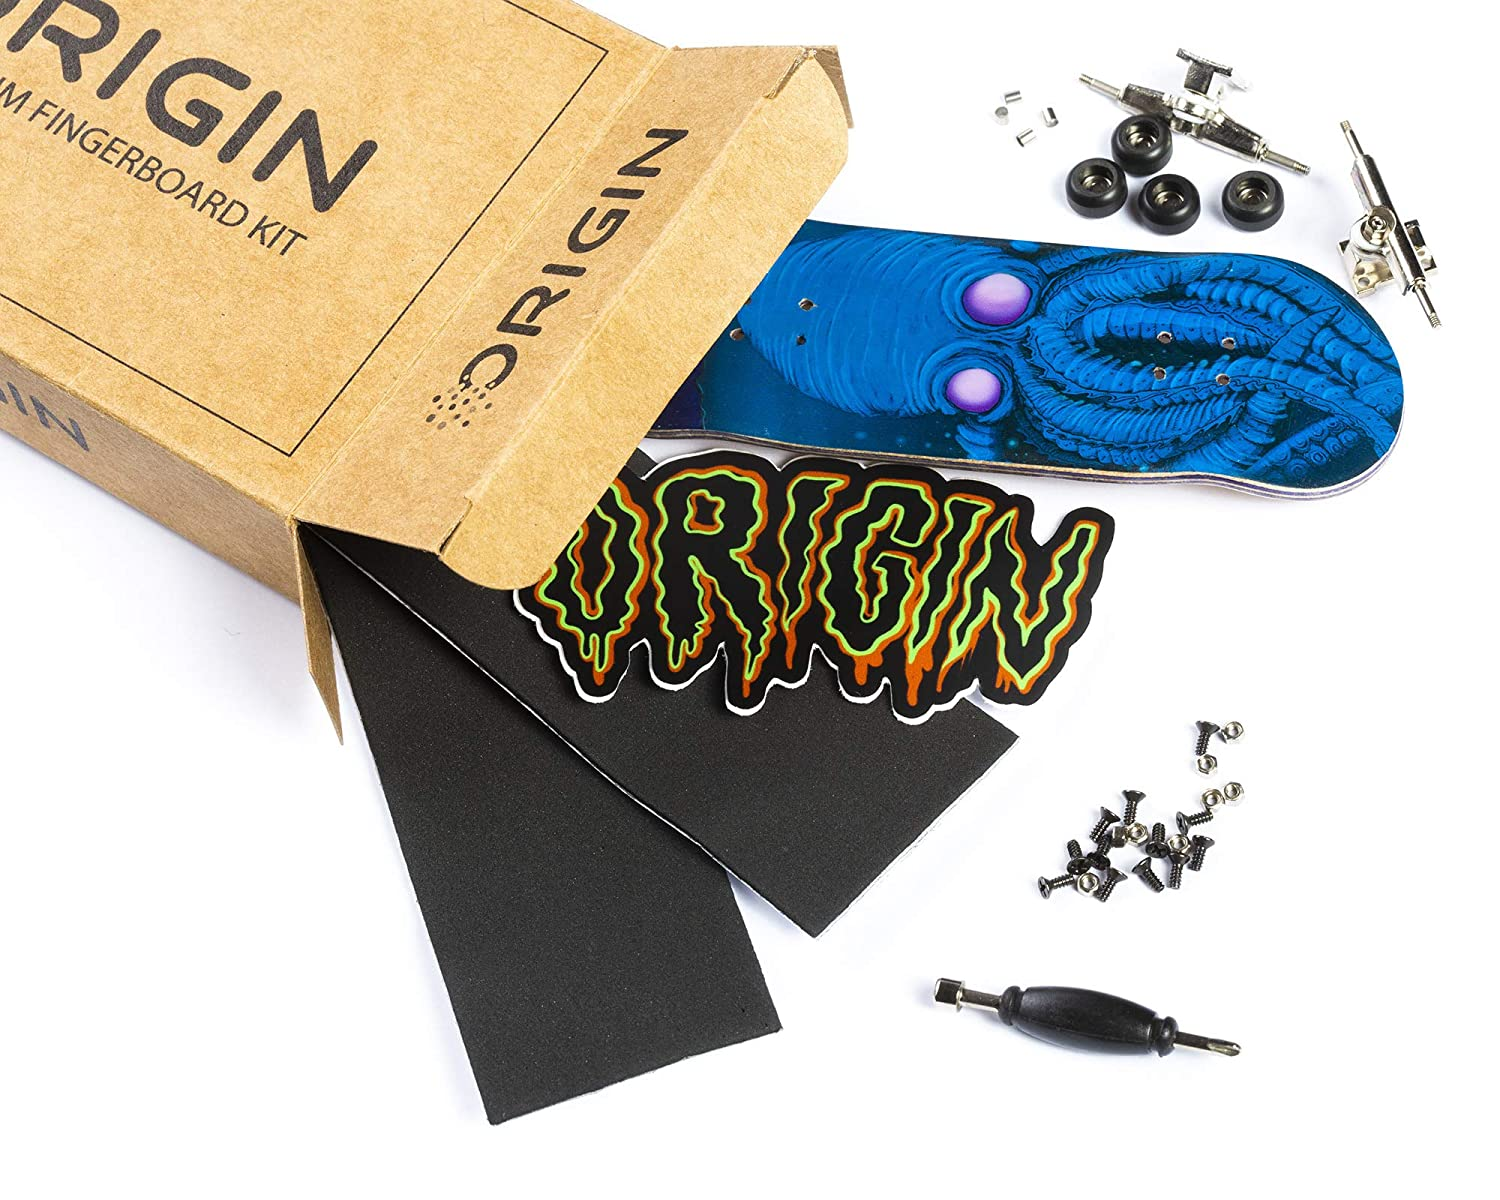 Origin Fingerboards Premium Graphic Fingerboard Kit 32mm 5 Ply Canadian Maple Skateboard Toy CNC Bearing Wheels Kraken